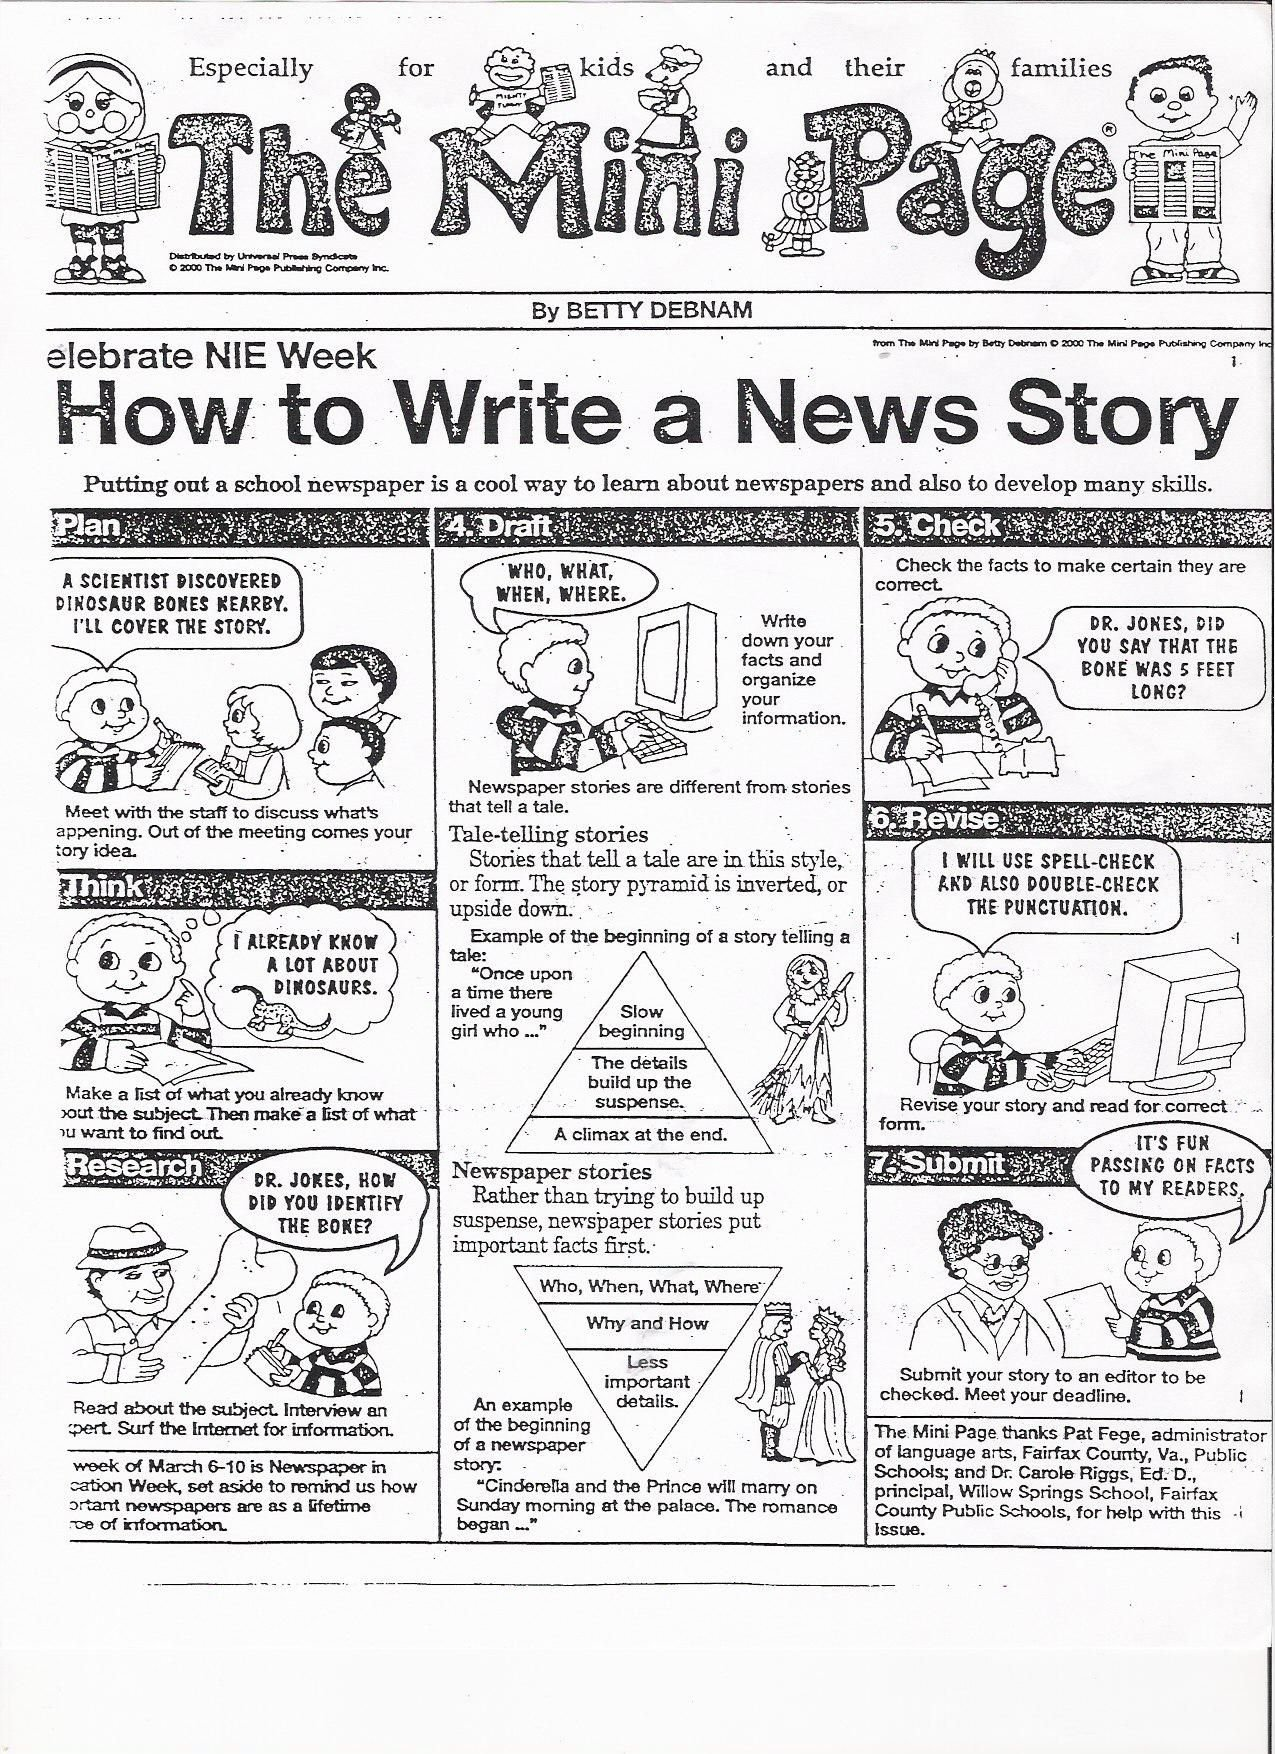 10 Nice High School Newspaper Article Ideas how to make money writing articles newspaper cartoon and programming 2